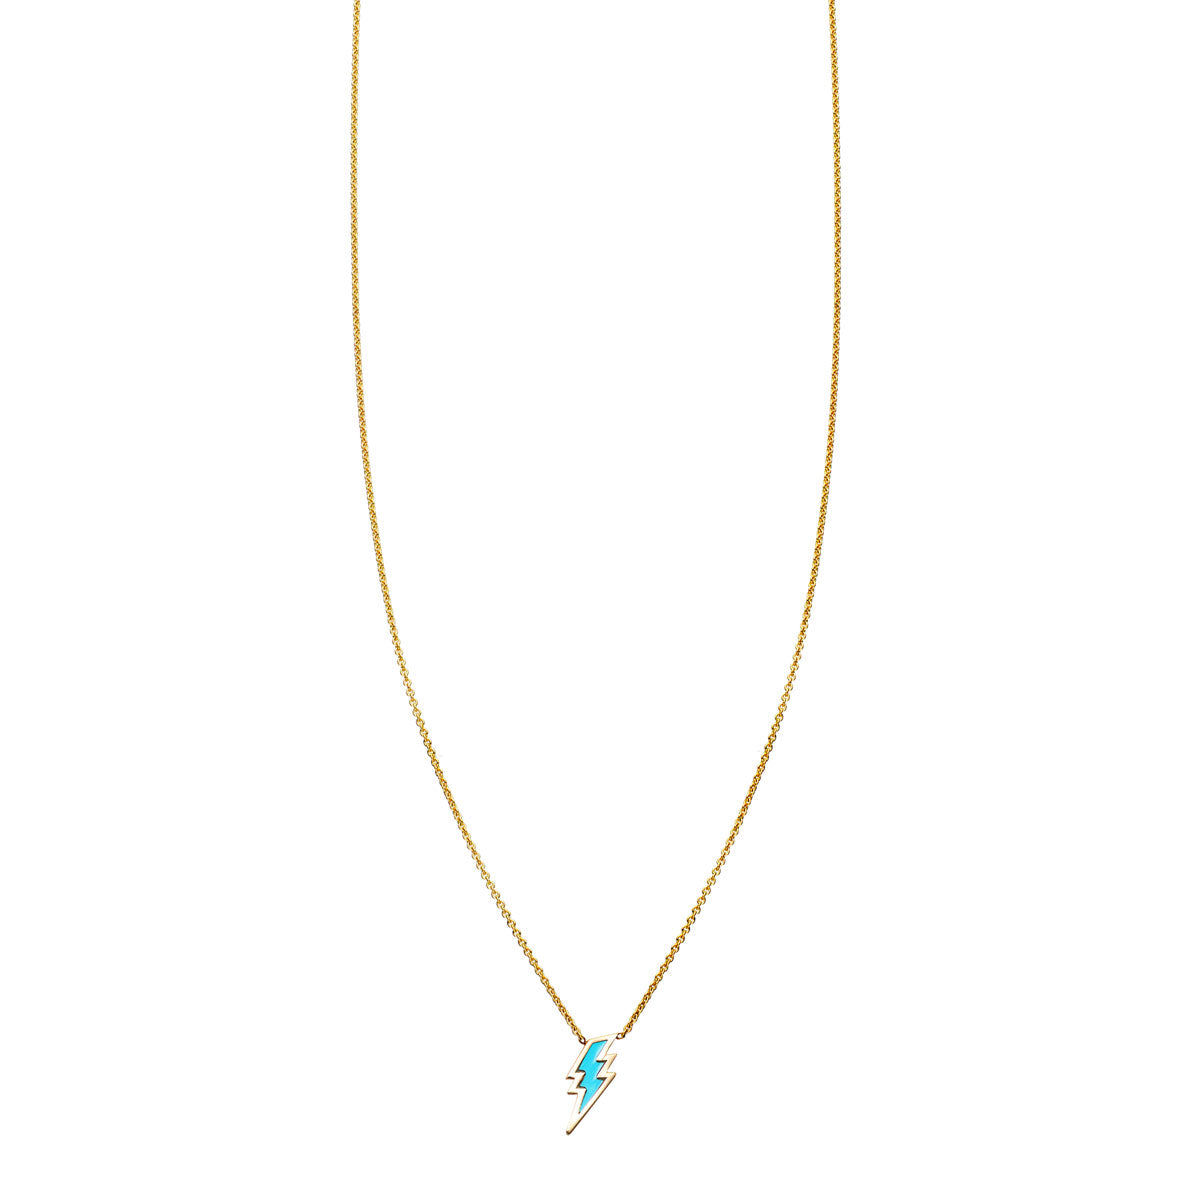 Image of Turquoise Inlaid Lightning Bolt Necklace